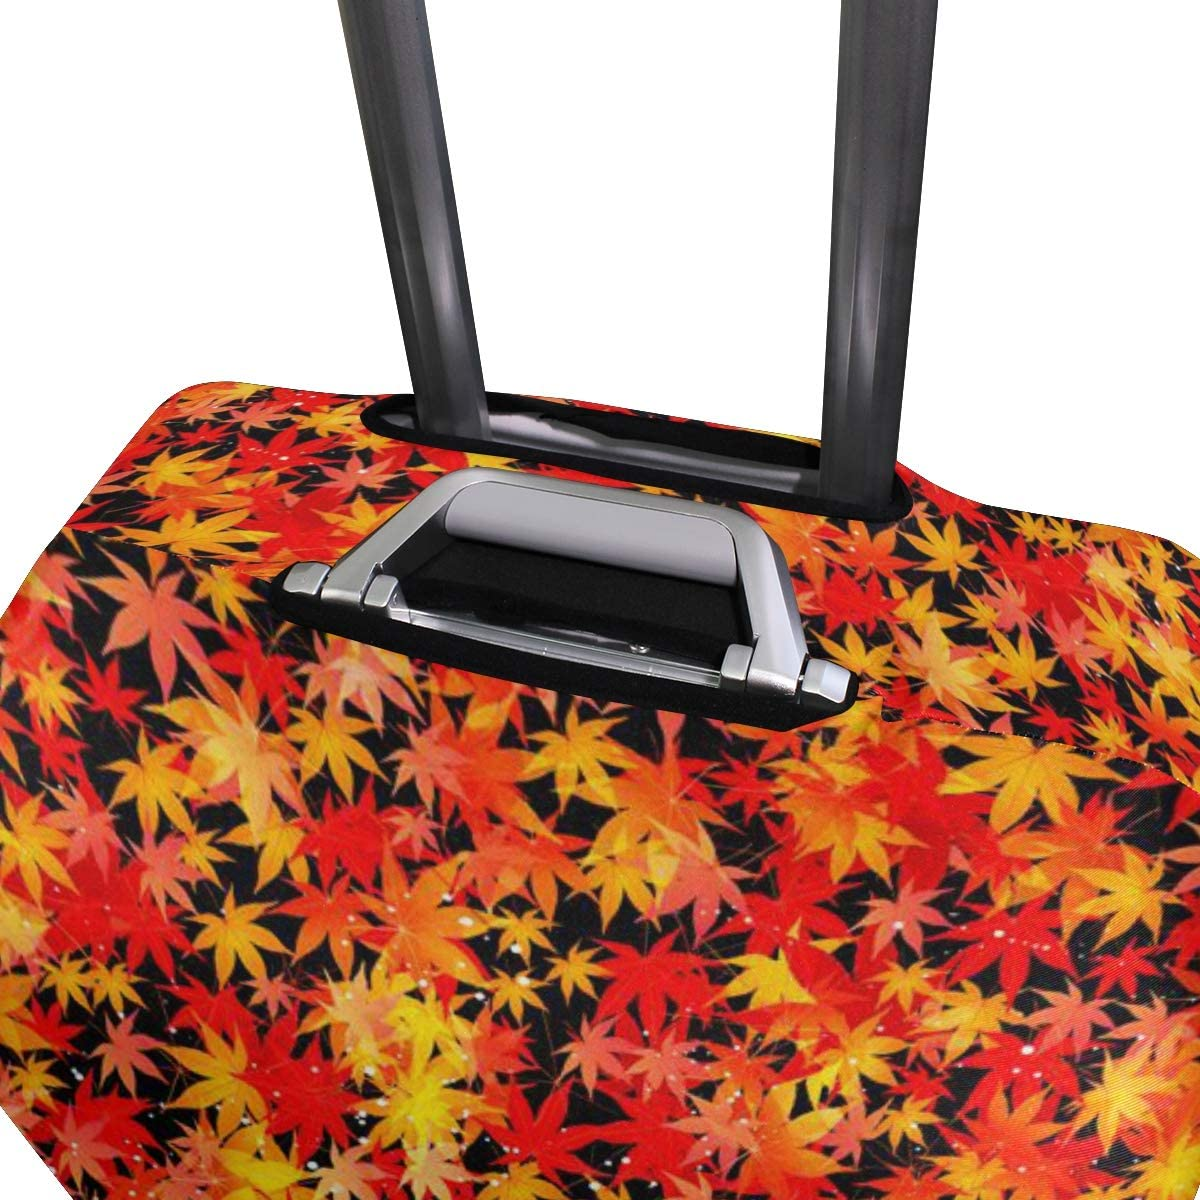 OREZI Luggage Protector,Maple Leaf Elastic Travel Luggage Suitcase Cover,Washable and Durable Anti-Scratch Case Protective Cover for 18-32 Inches